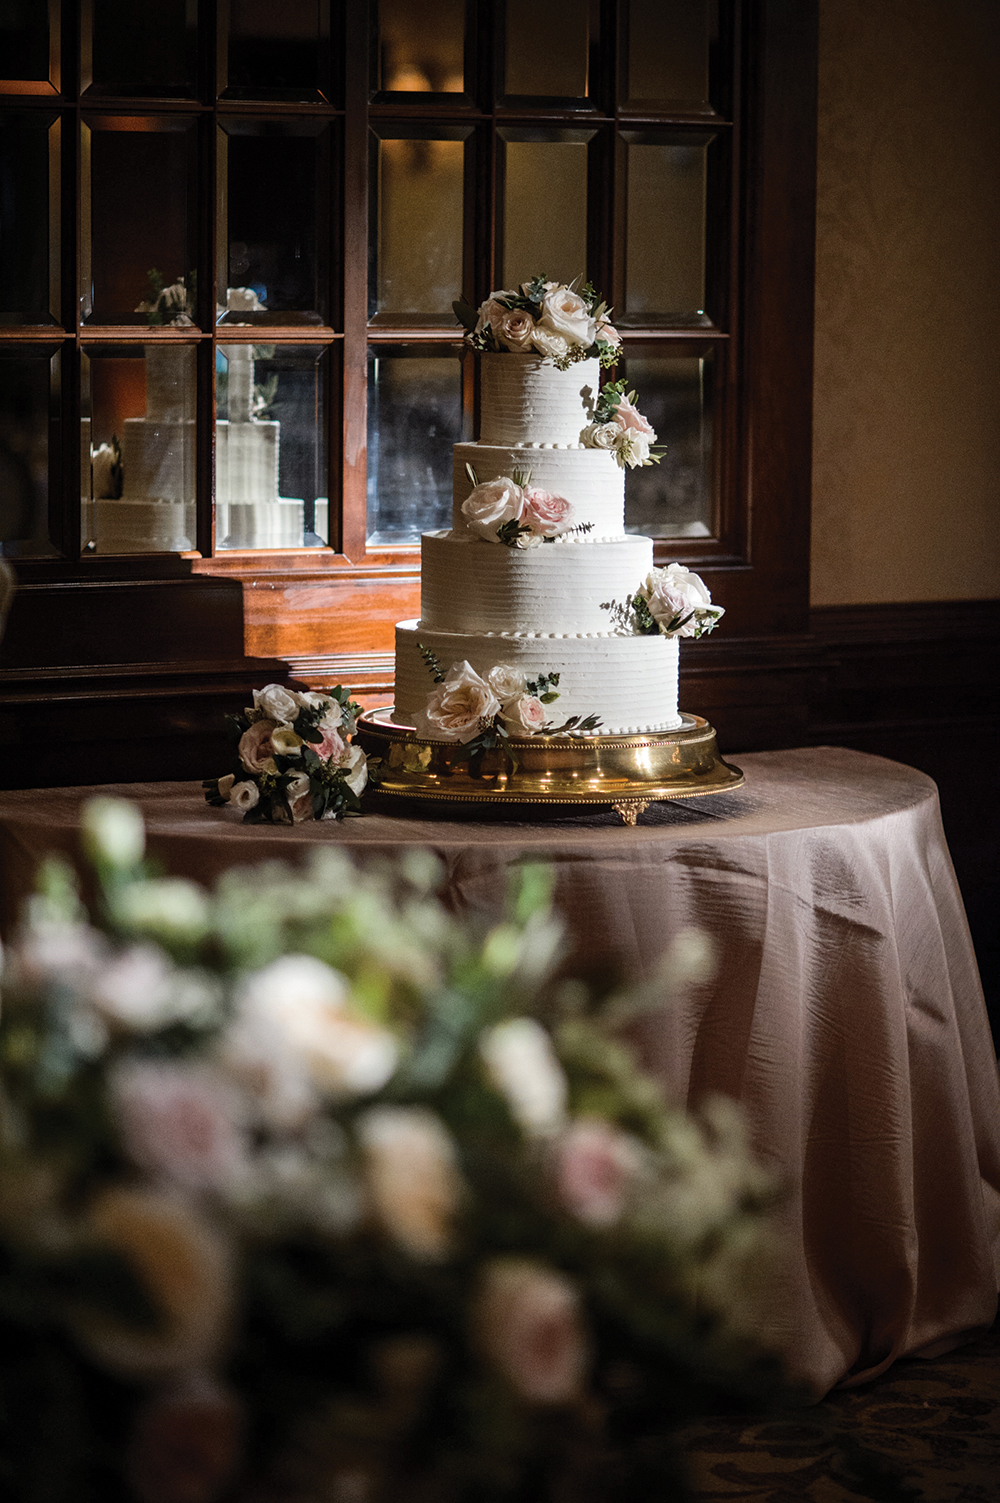 susie's cakes-wedding